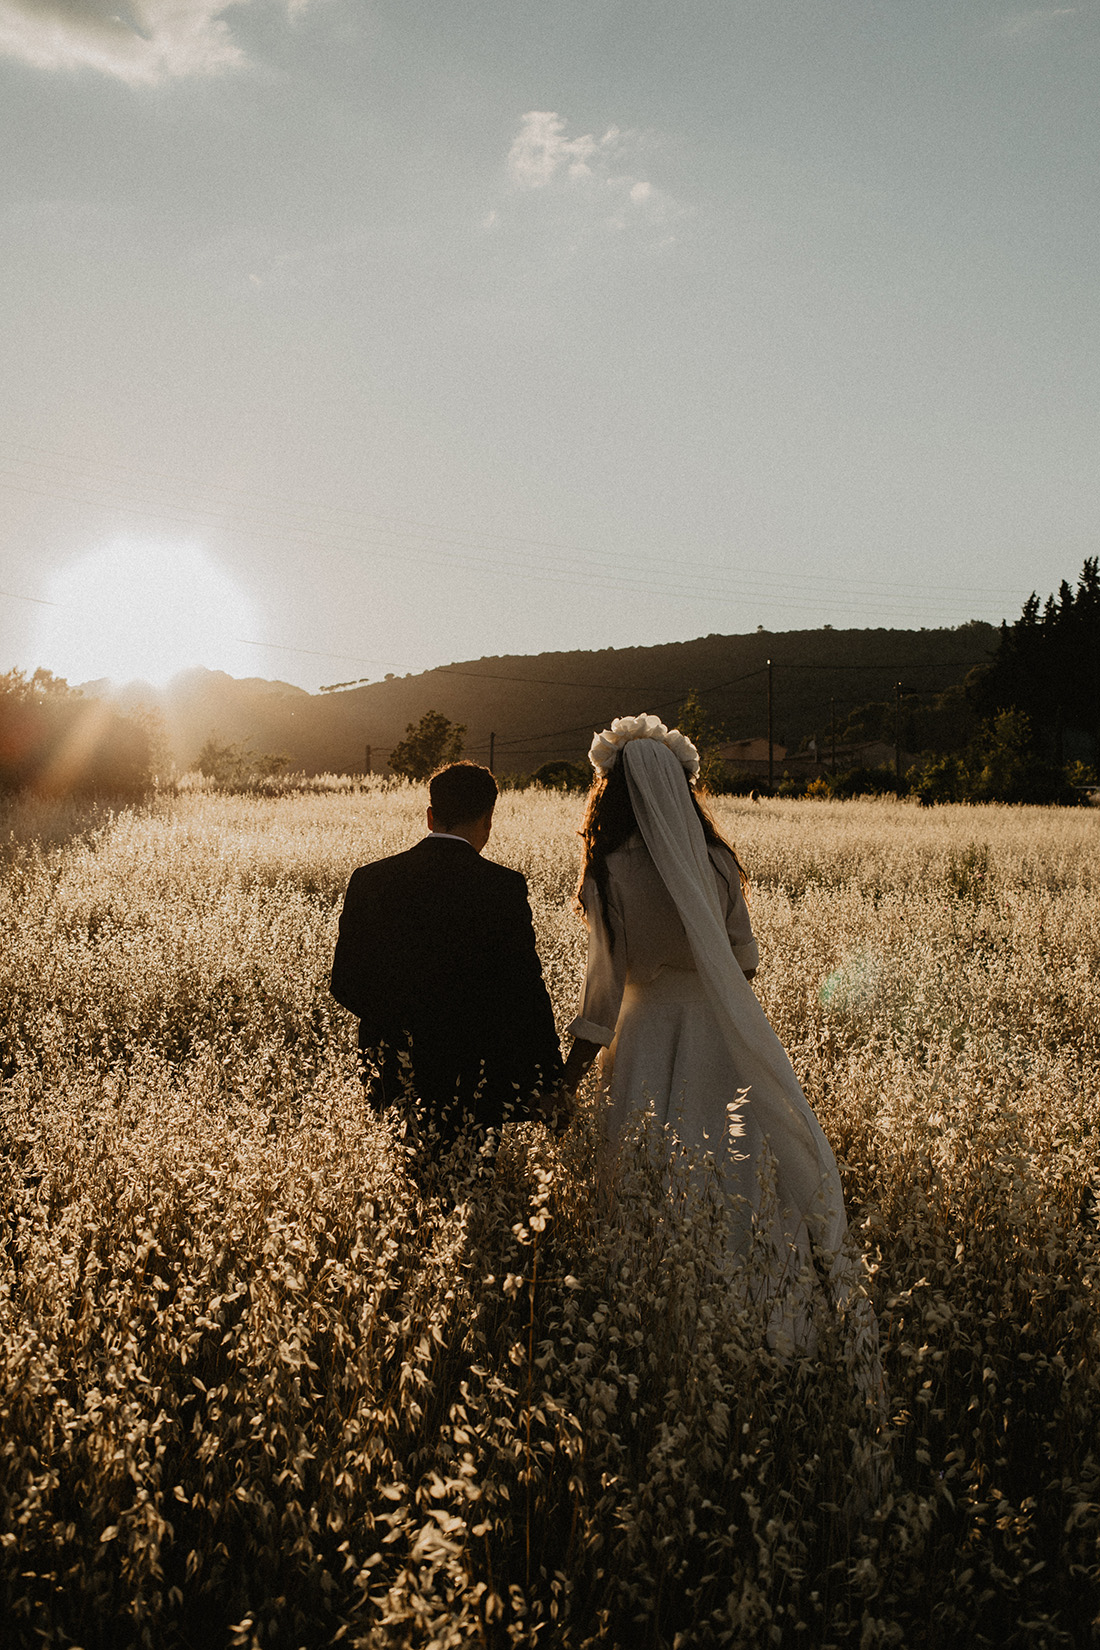 wedding couple walking by sunset in a oatfield